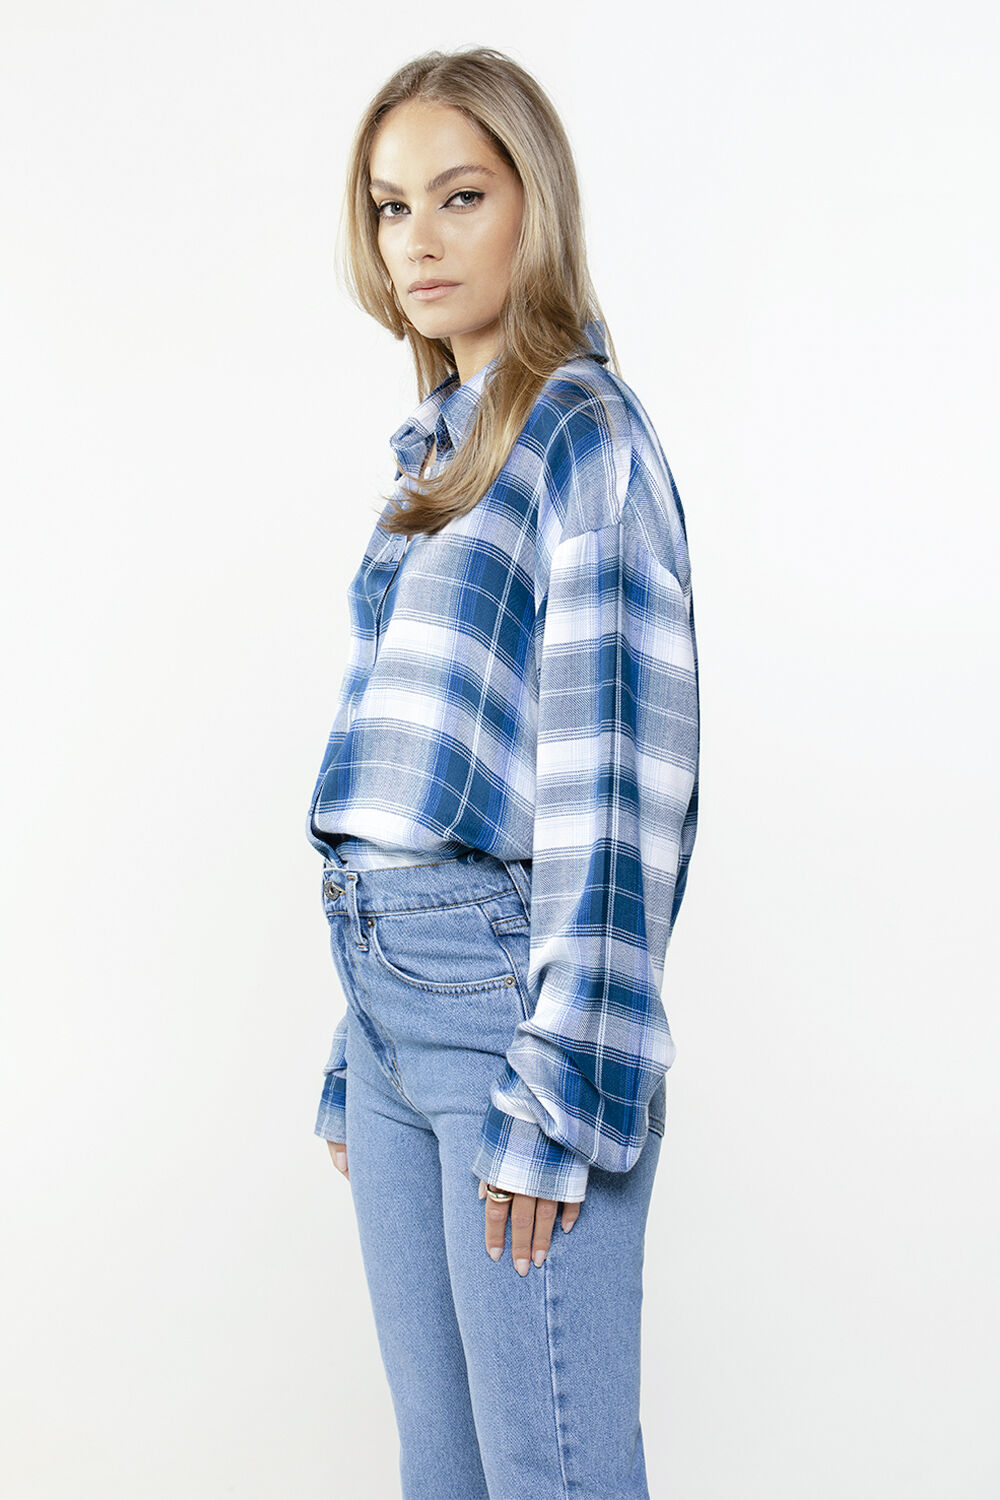 CLASSIC CHECK SHIRT in colour ANGEL FALLS